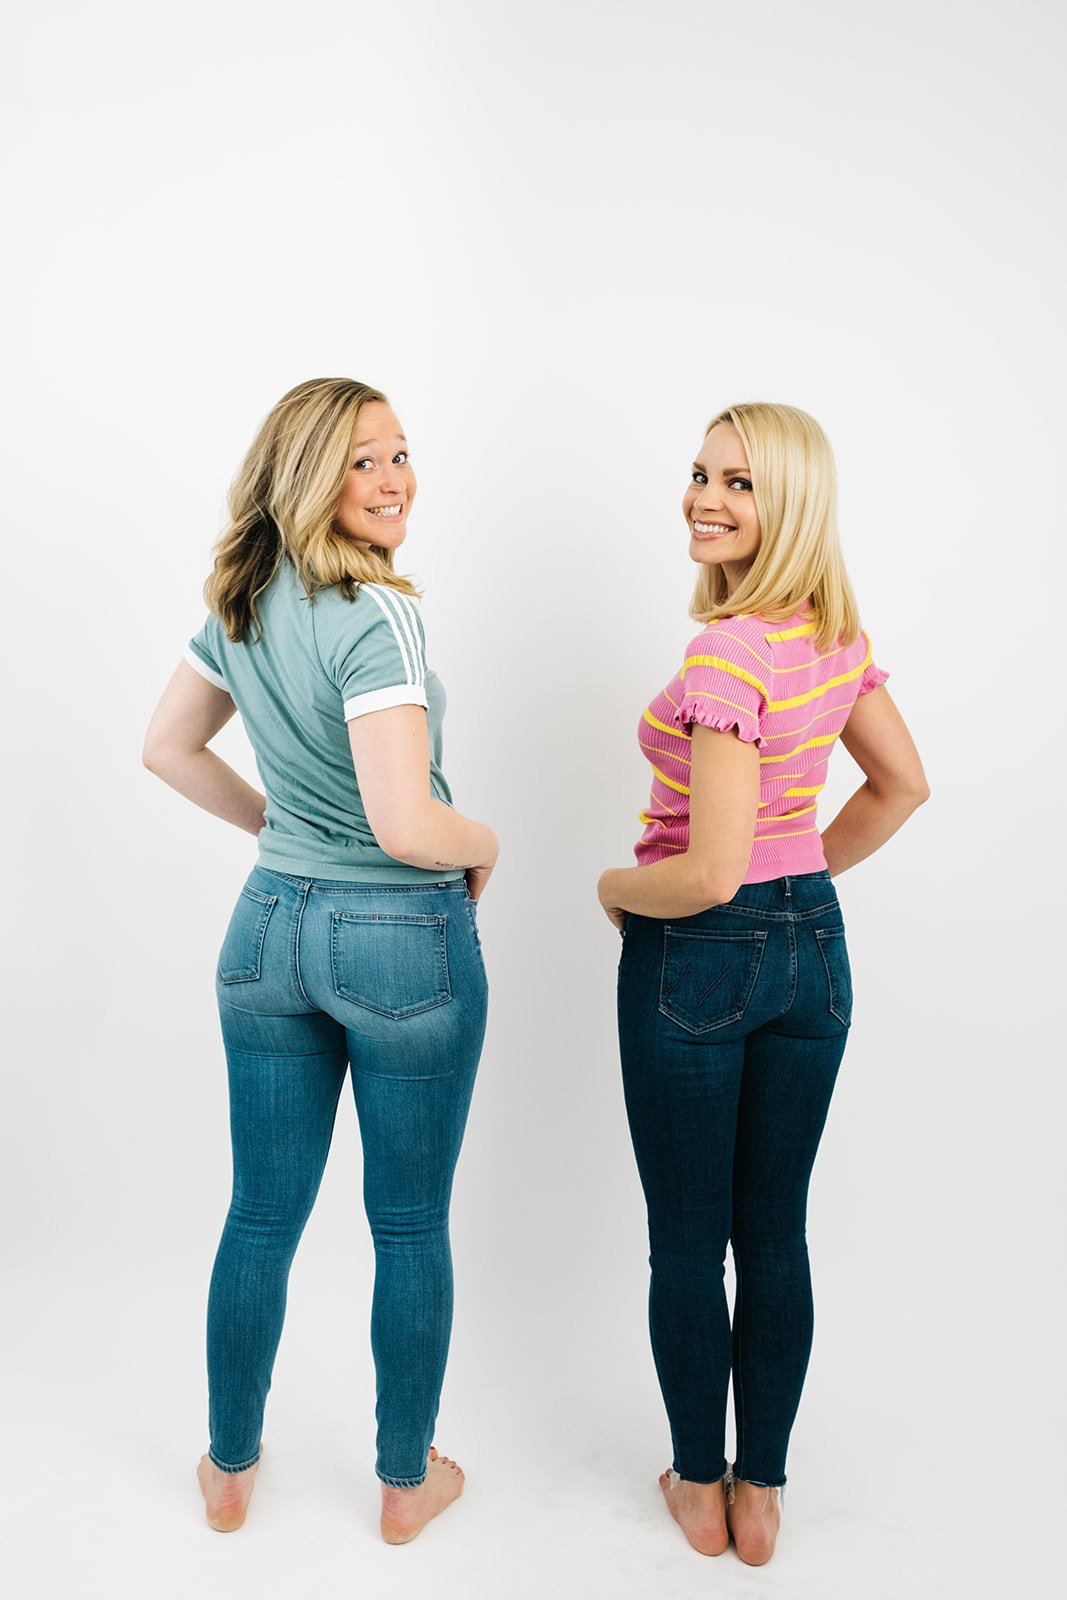 two blonde women in jeans and t-shirts looking over their shoulders